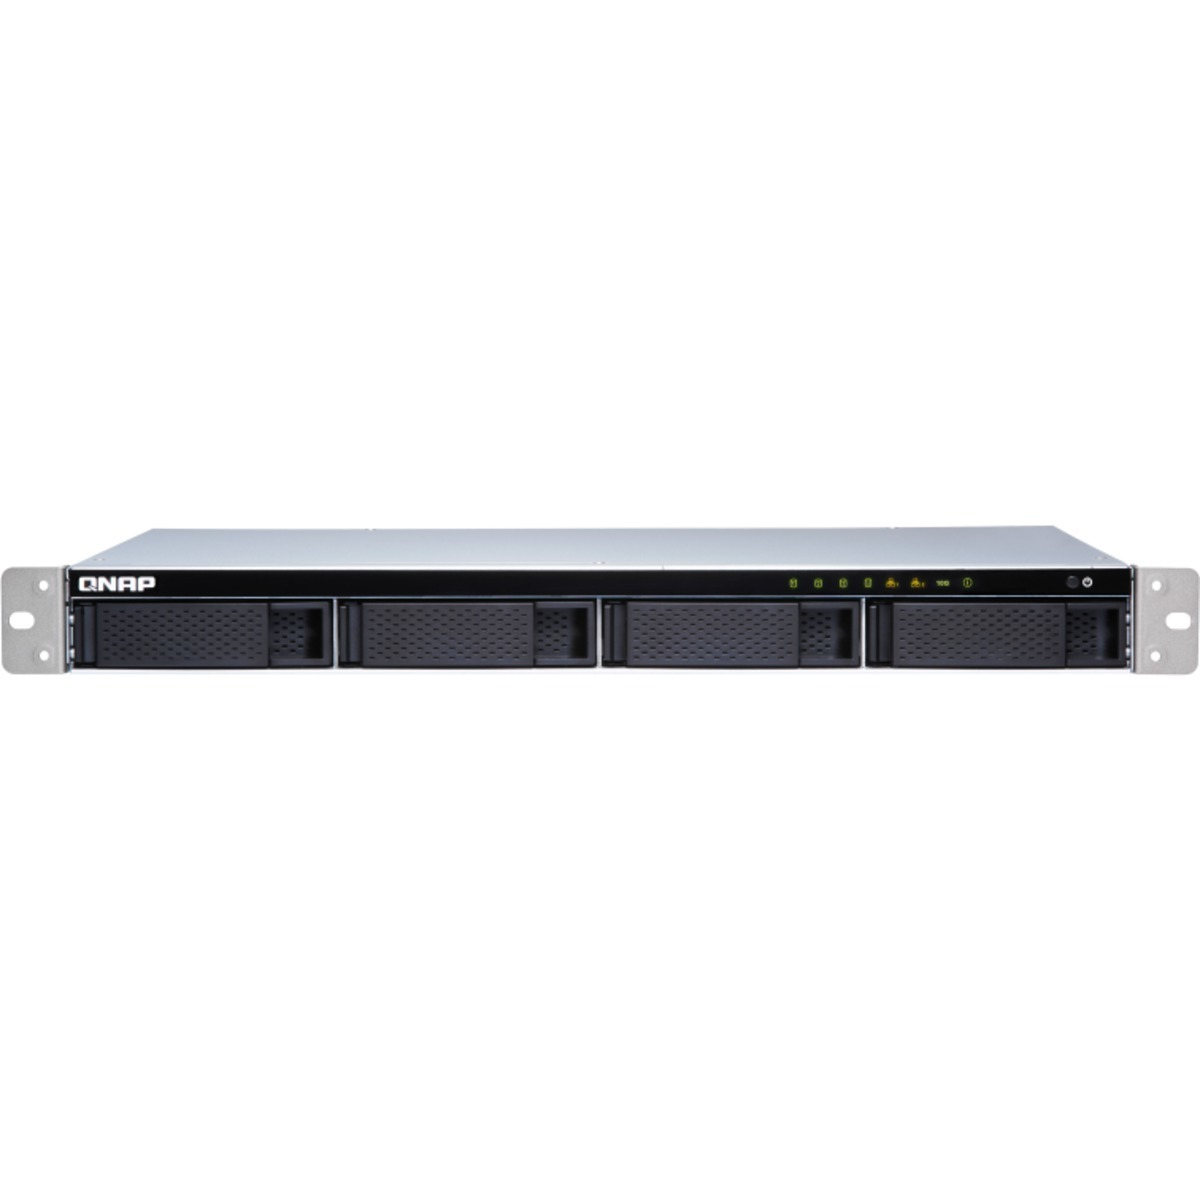 buy $1527 QNAP TS-431XeU 24tb RackMount NAS - Network Attached Storage Device 4x6000gb Western Digital Gold WD6003FRYZ 3.5 7200rpm SATA 6Gb/s HDD ENTERPRISE Class Drives Installed - Burn-In Tested - nas headquarters buy network attached storage server device das new raid-5 free shipping usa spring inventory clearance sale happening now TS-431XeU